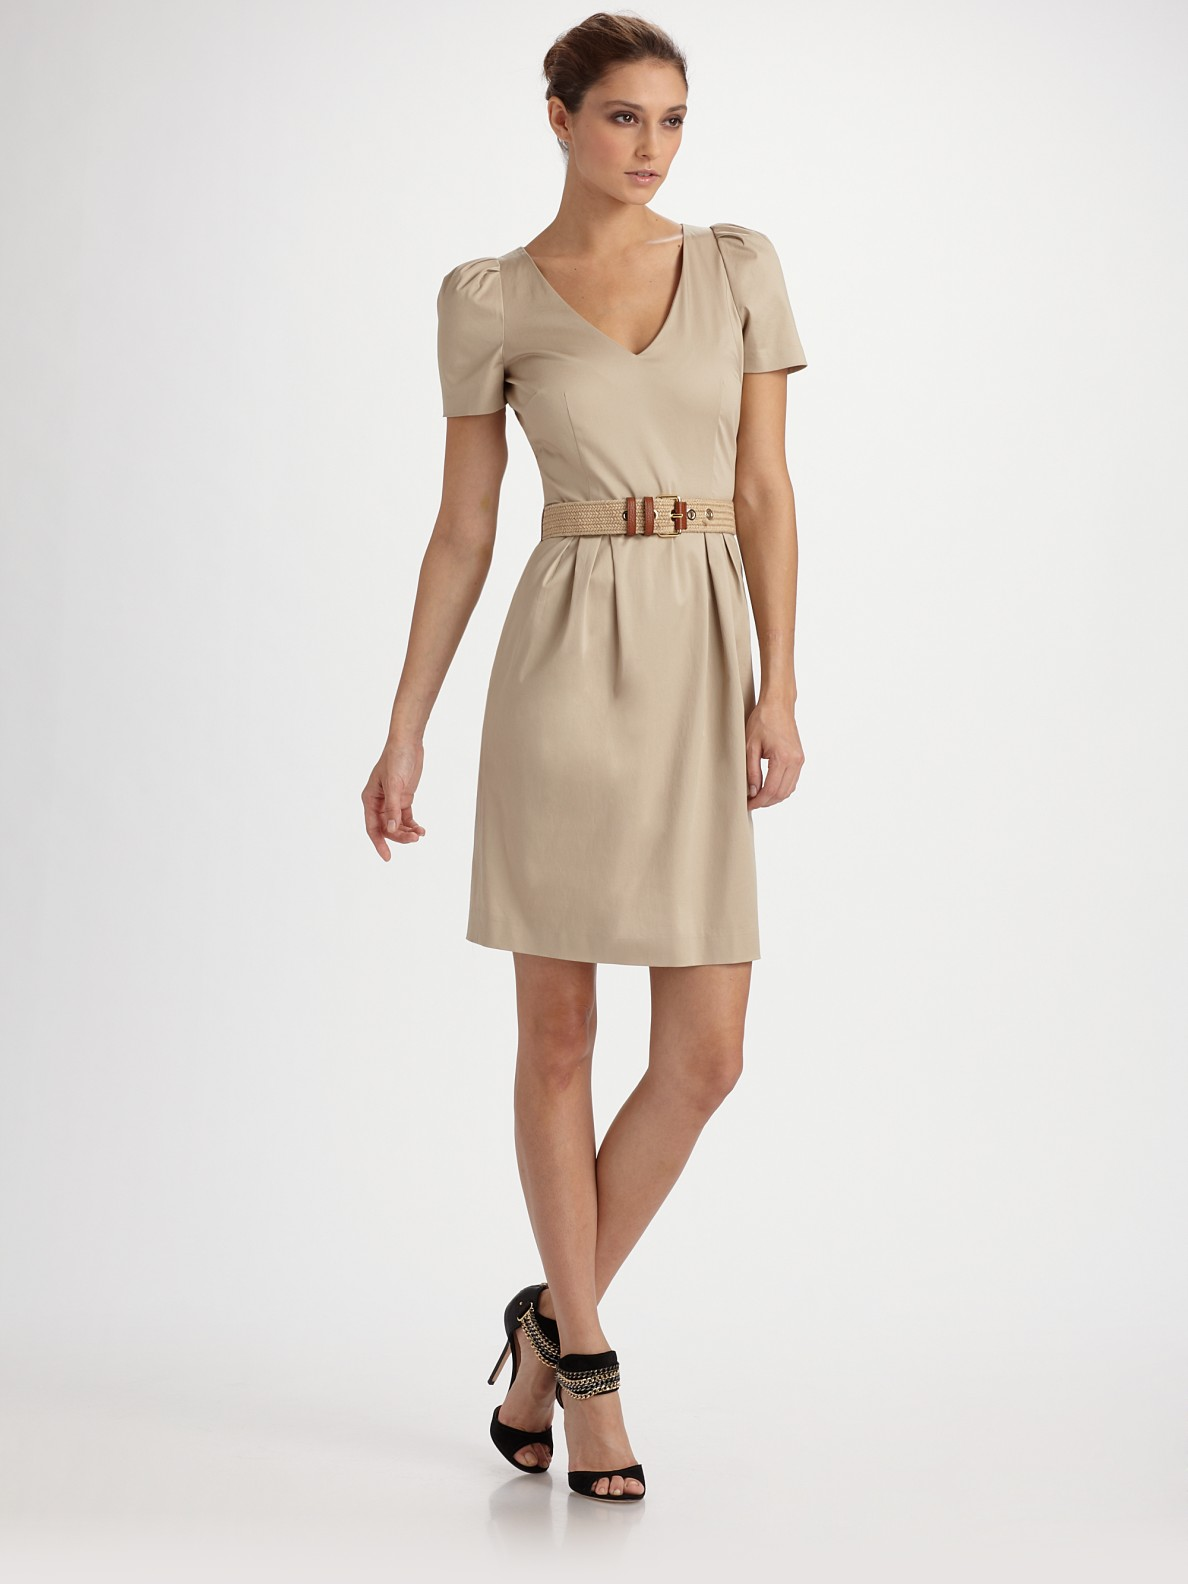 Moschino Cheap Chic Cotton Sateen V Neck Belted Dress In